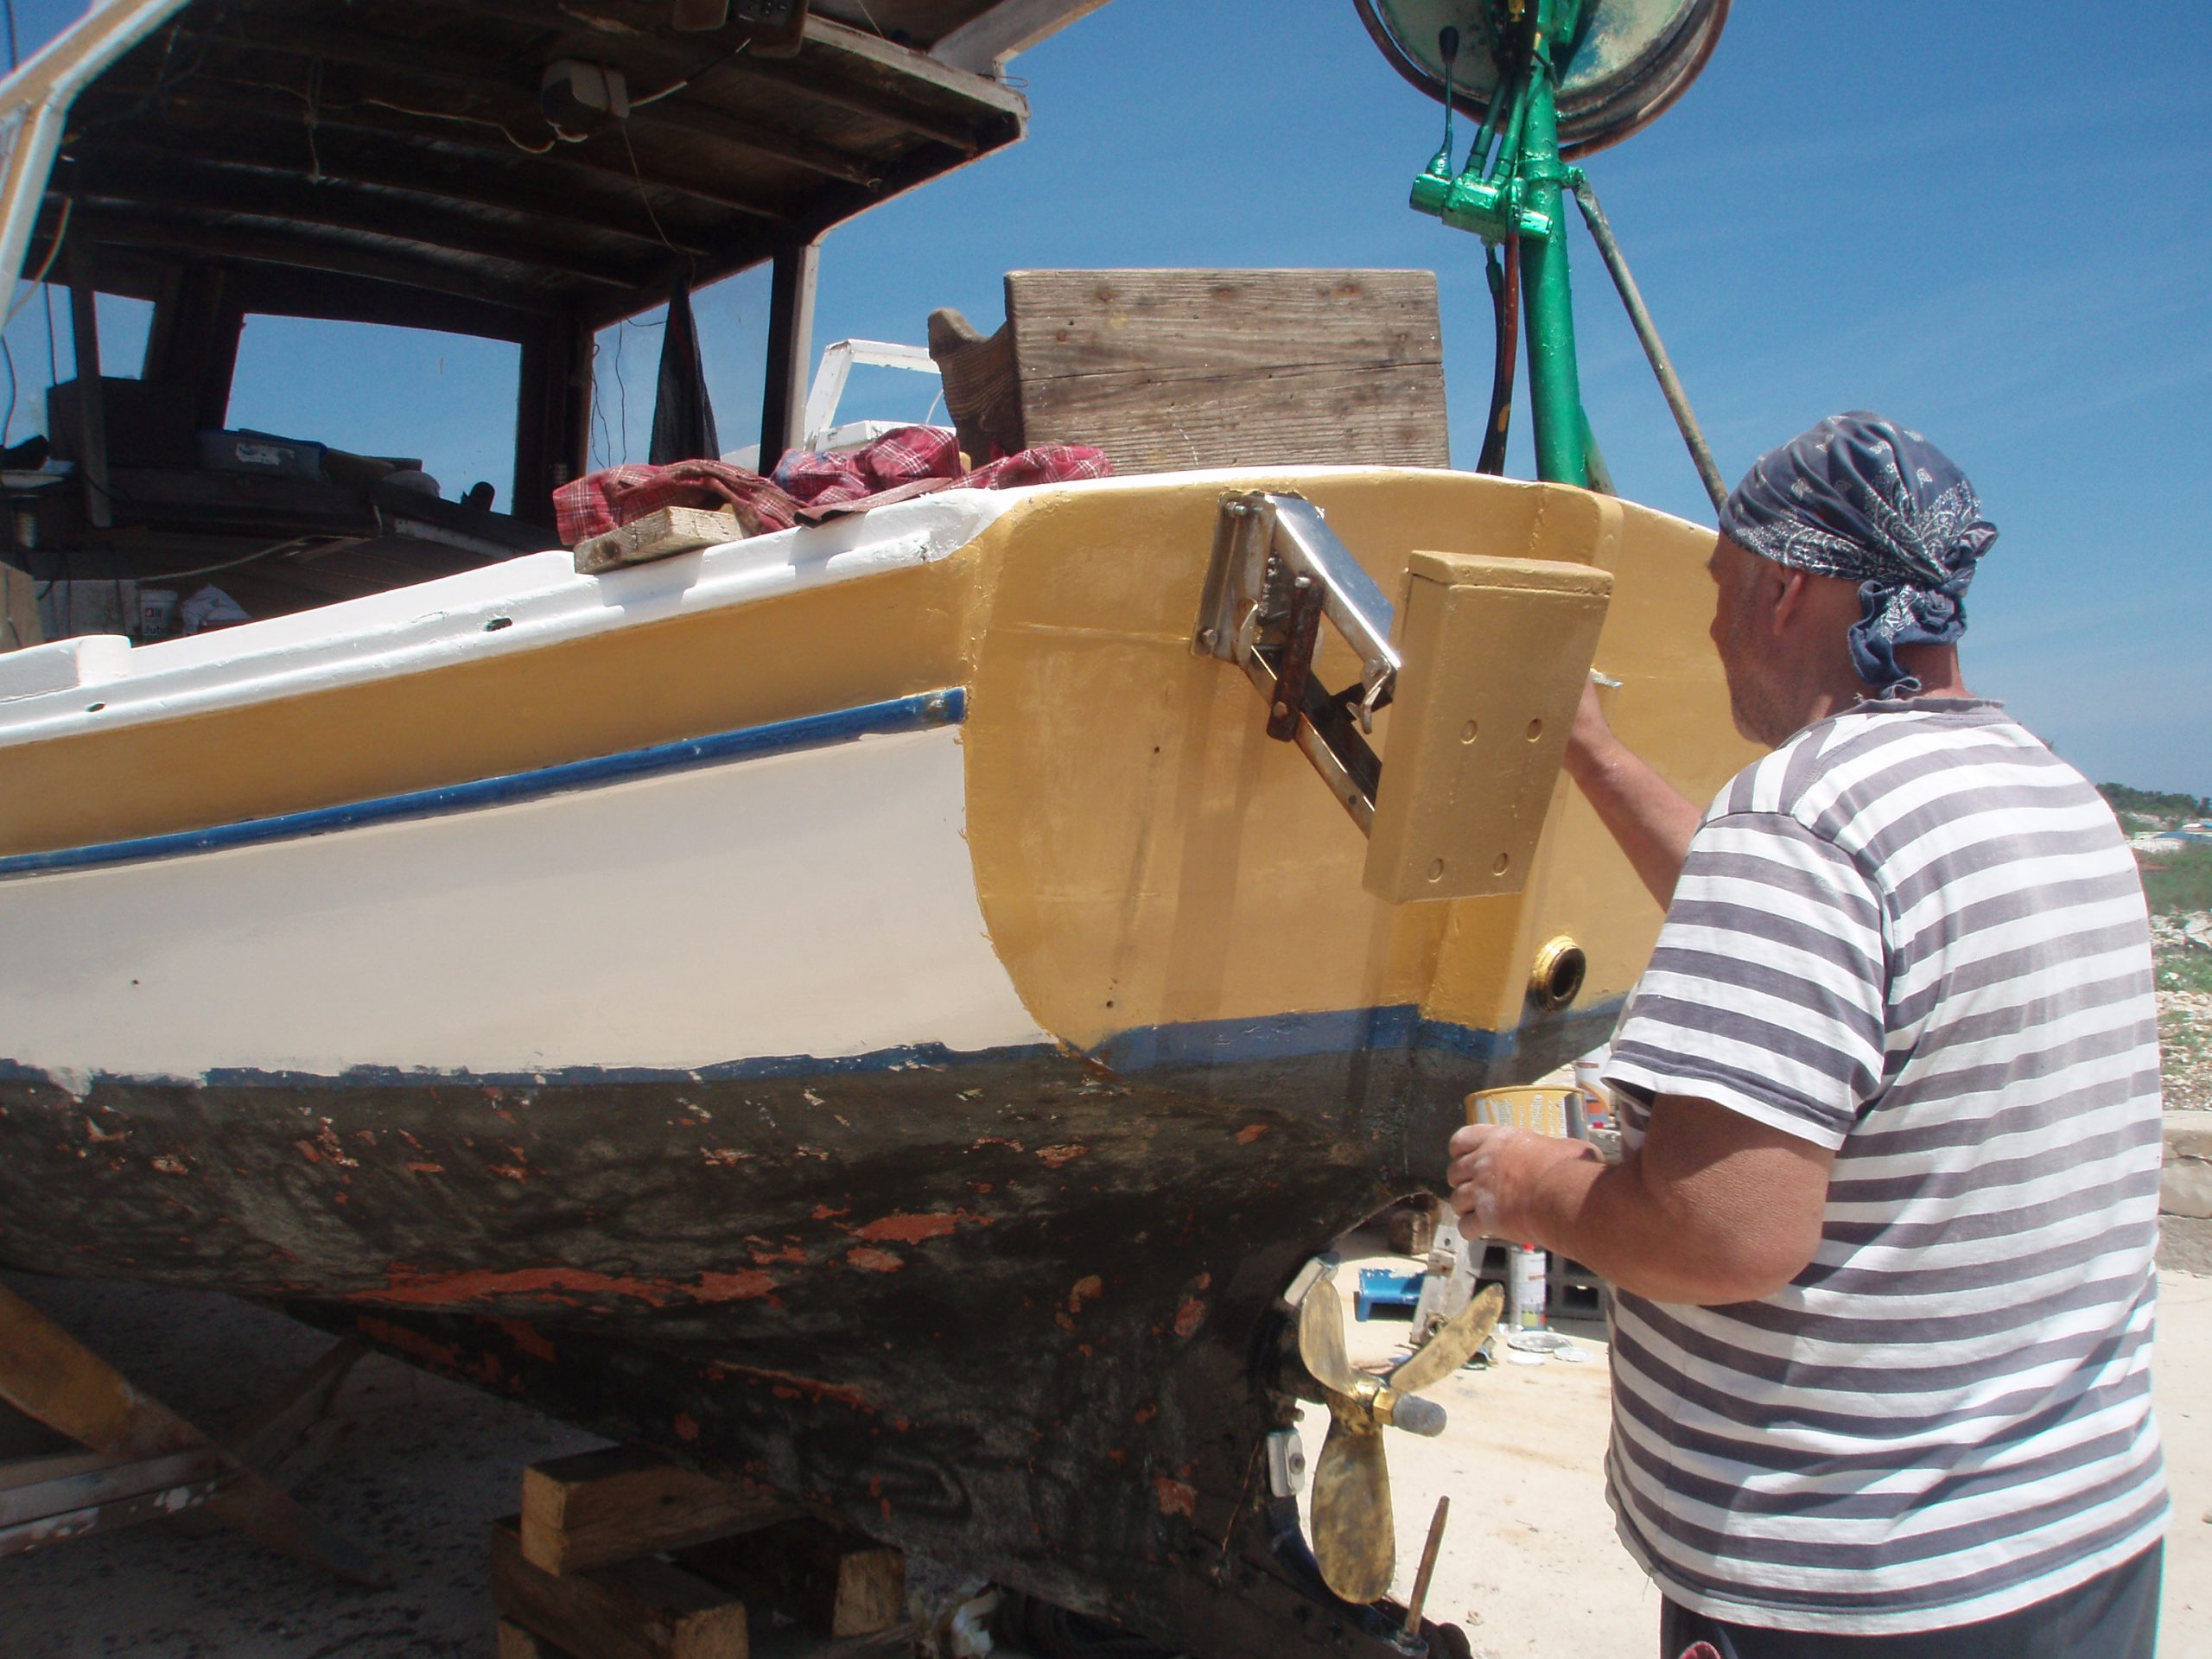 """In front of the Sports and Fishing Association """"Galeb"""" (Seagull) in the harbour of Mul on Silba, members run a makeshift shipyard. We came to Silba just in time for the first briškula tournament organized in Galeb, followed by grilled fish and sausages, and wine """"from the shop""""."""